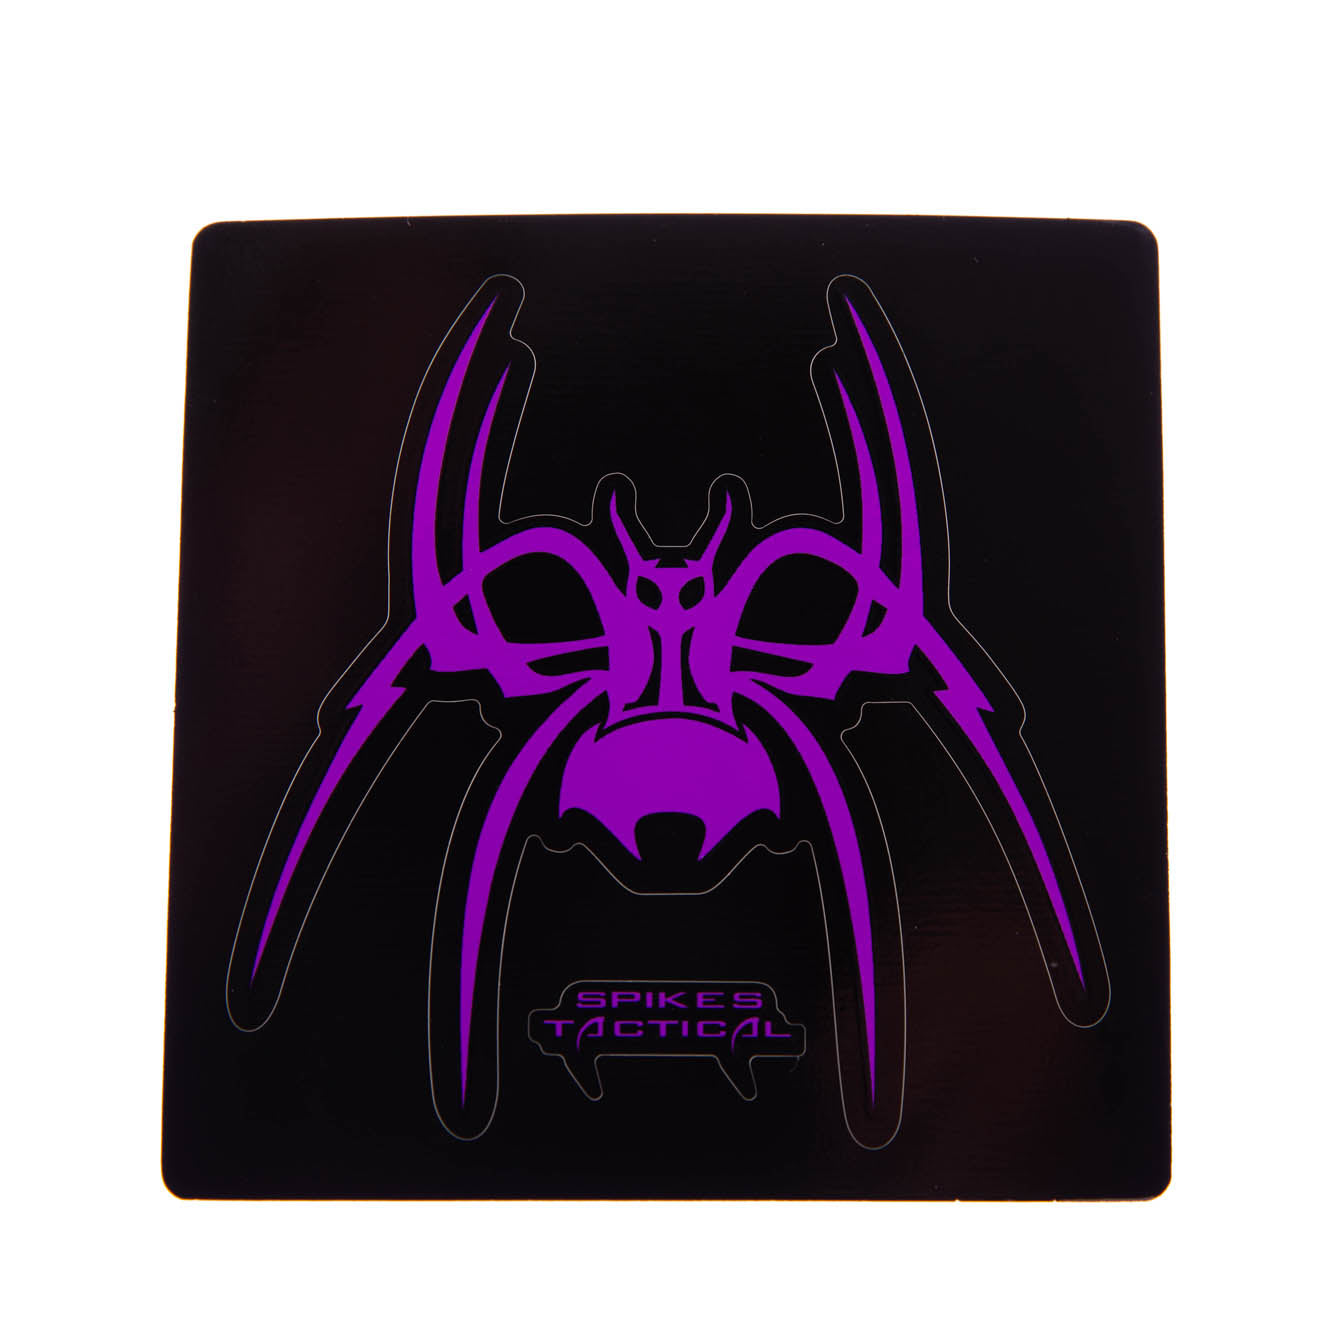 Spider Peel and Stick Decal